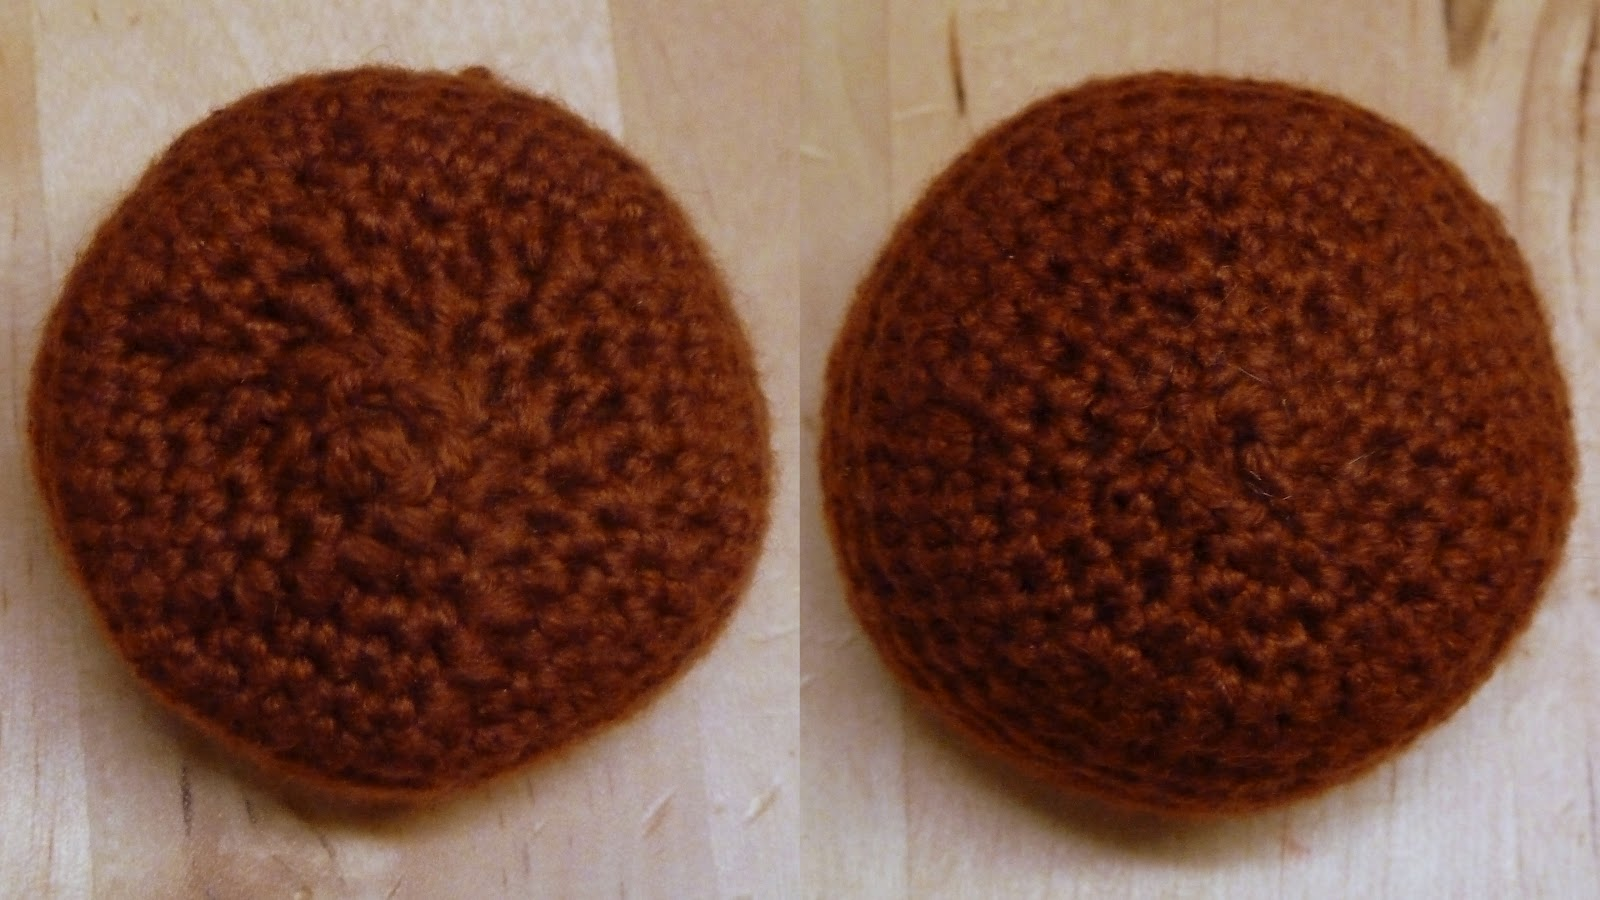 Crocheting In A Continuous Round : ... Mama Sanchez busy...: Crochet - working doubles in continuous rounds